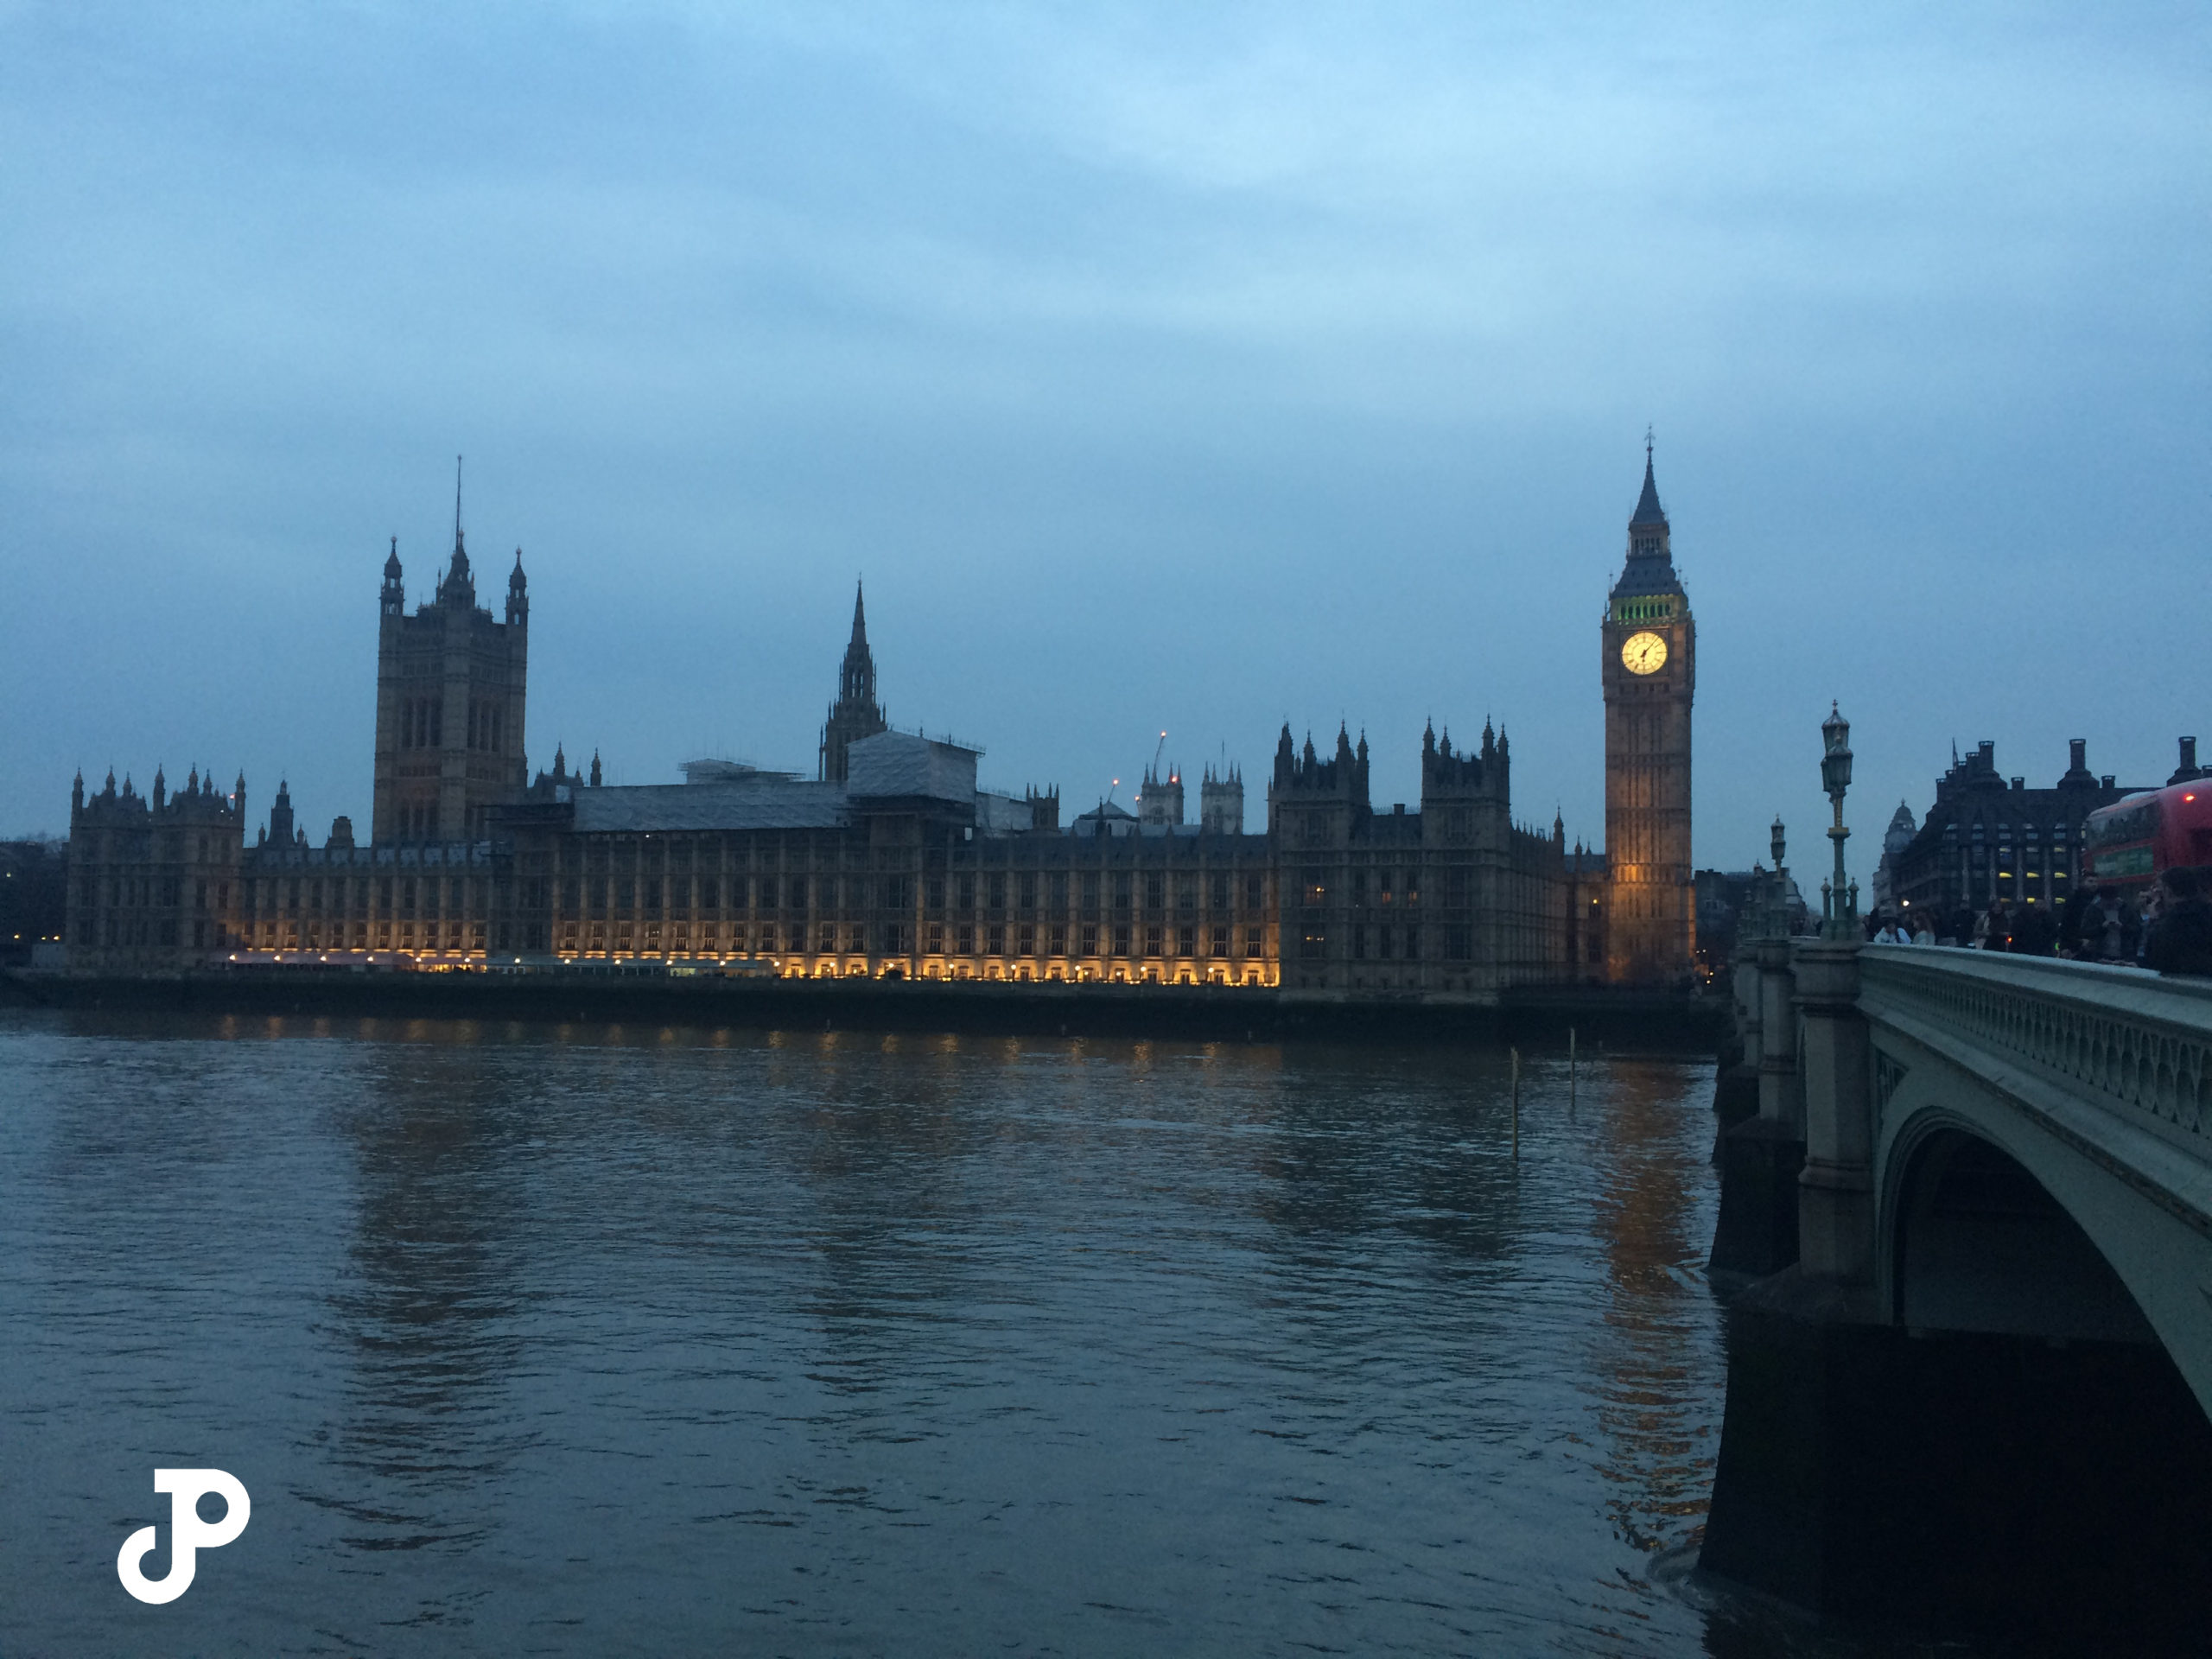 Big Ben and the Houses of Parliament at twilight